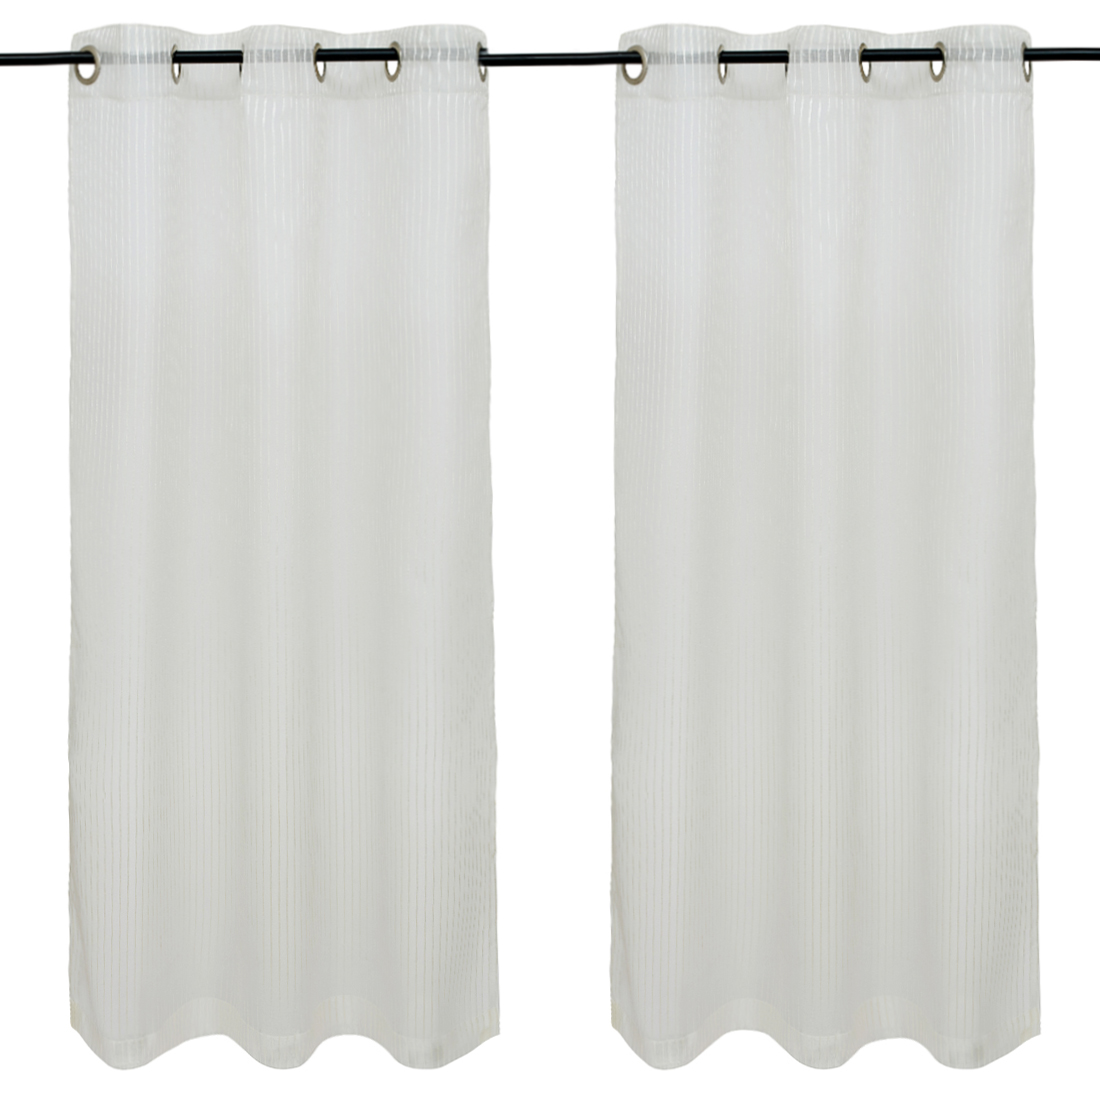 Amour set of 2 Polyester Window Curtains in Charcoal Colour by Living Essence